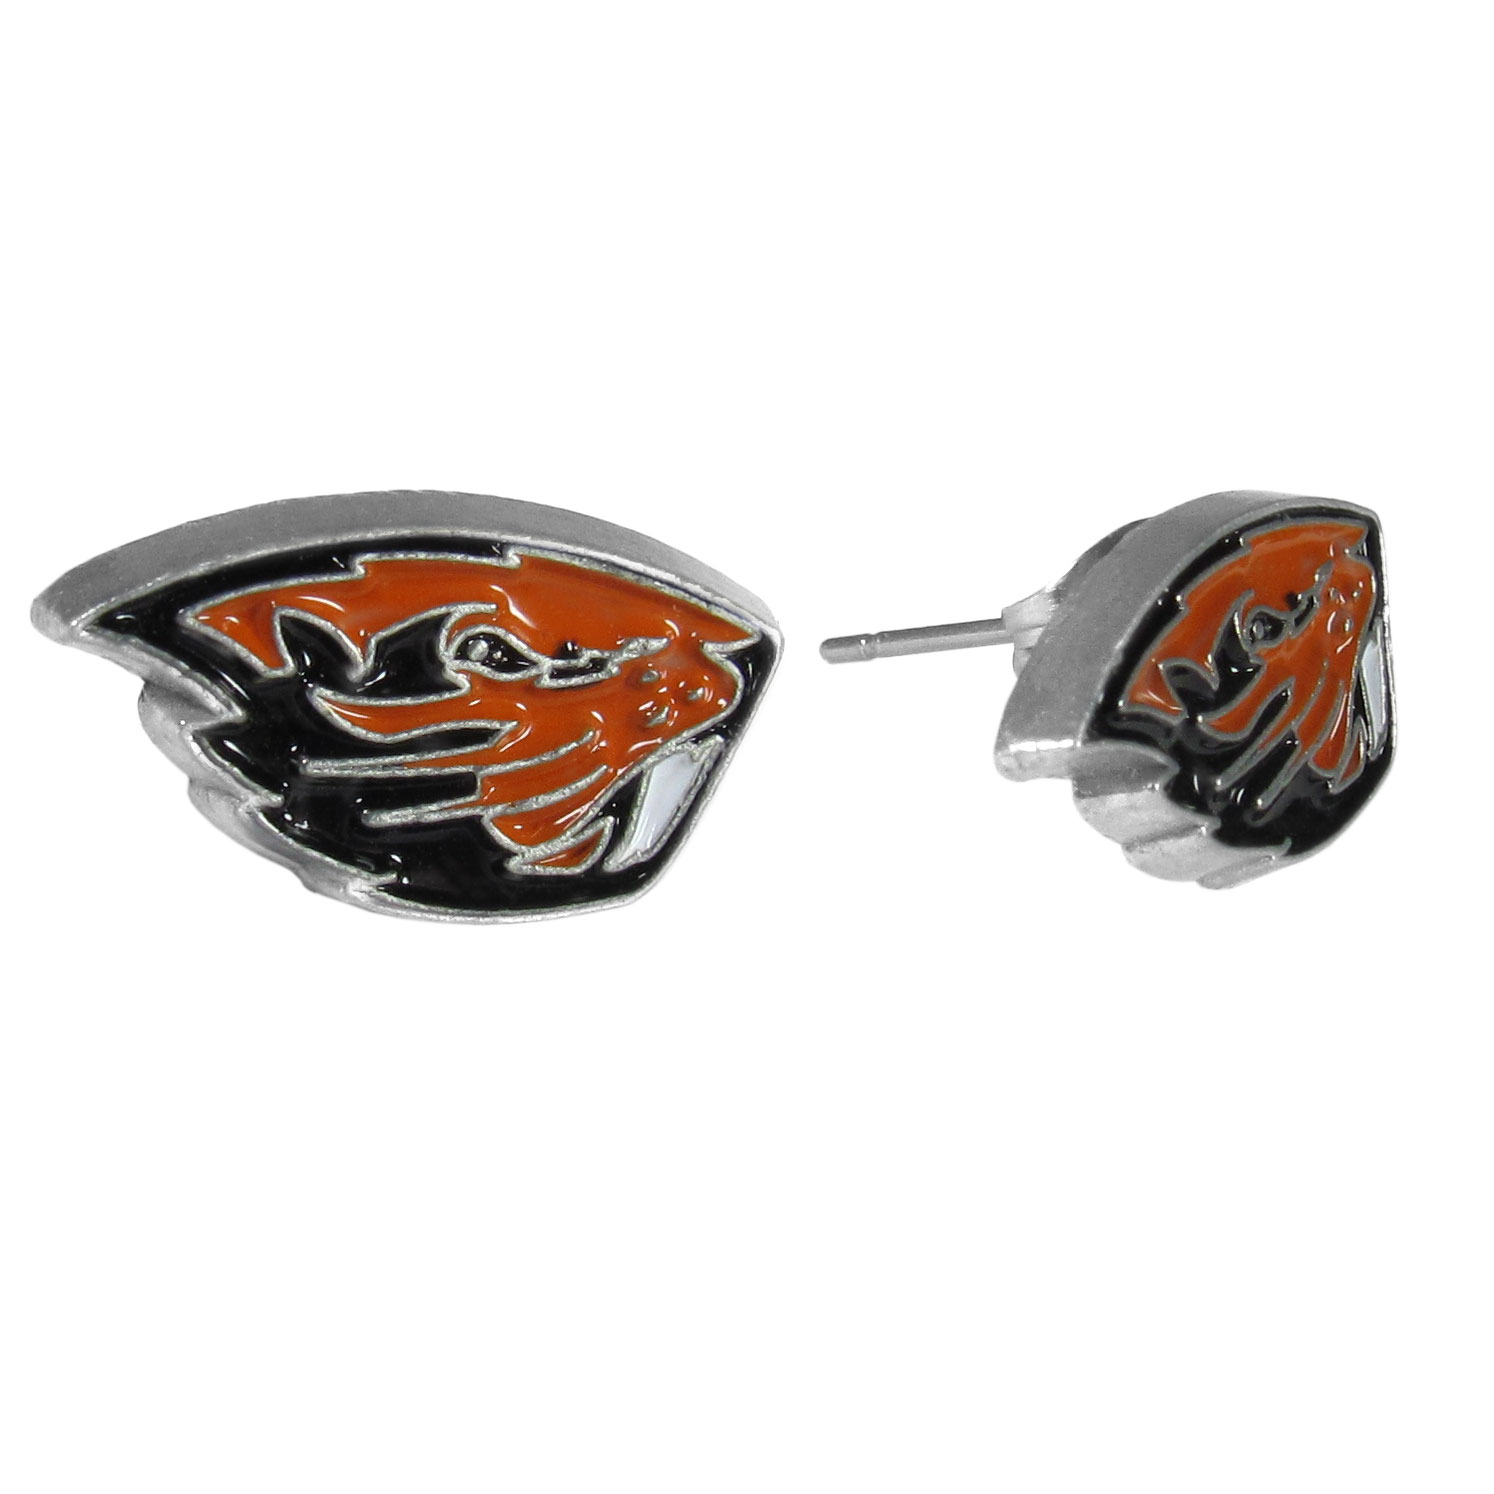 Oregon St. Beavers Stud Earrings - Big and flashy isn't for every woman. These 1/2 inch stud earrings offer a small option that still shows she is a true Oregon St. Beavers fan. The earrings have hypoallergenic posts.